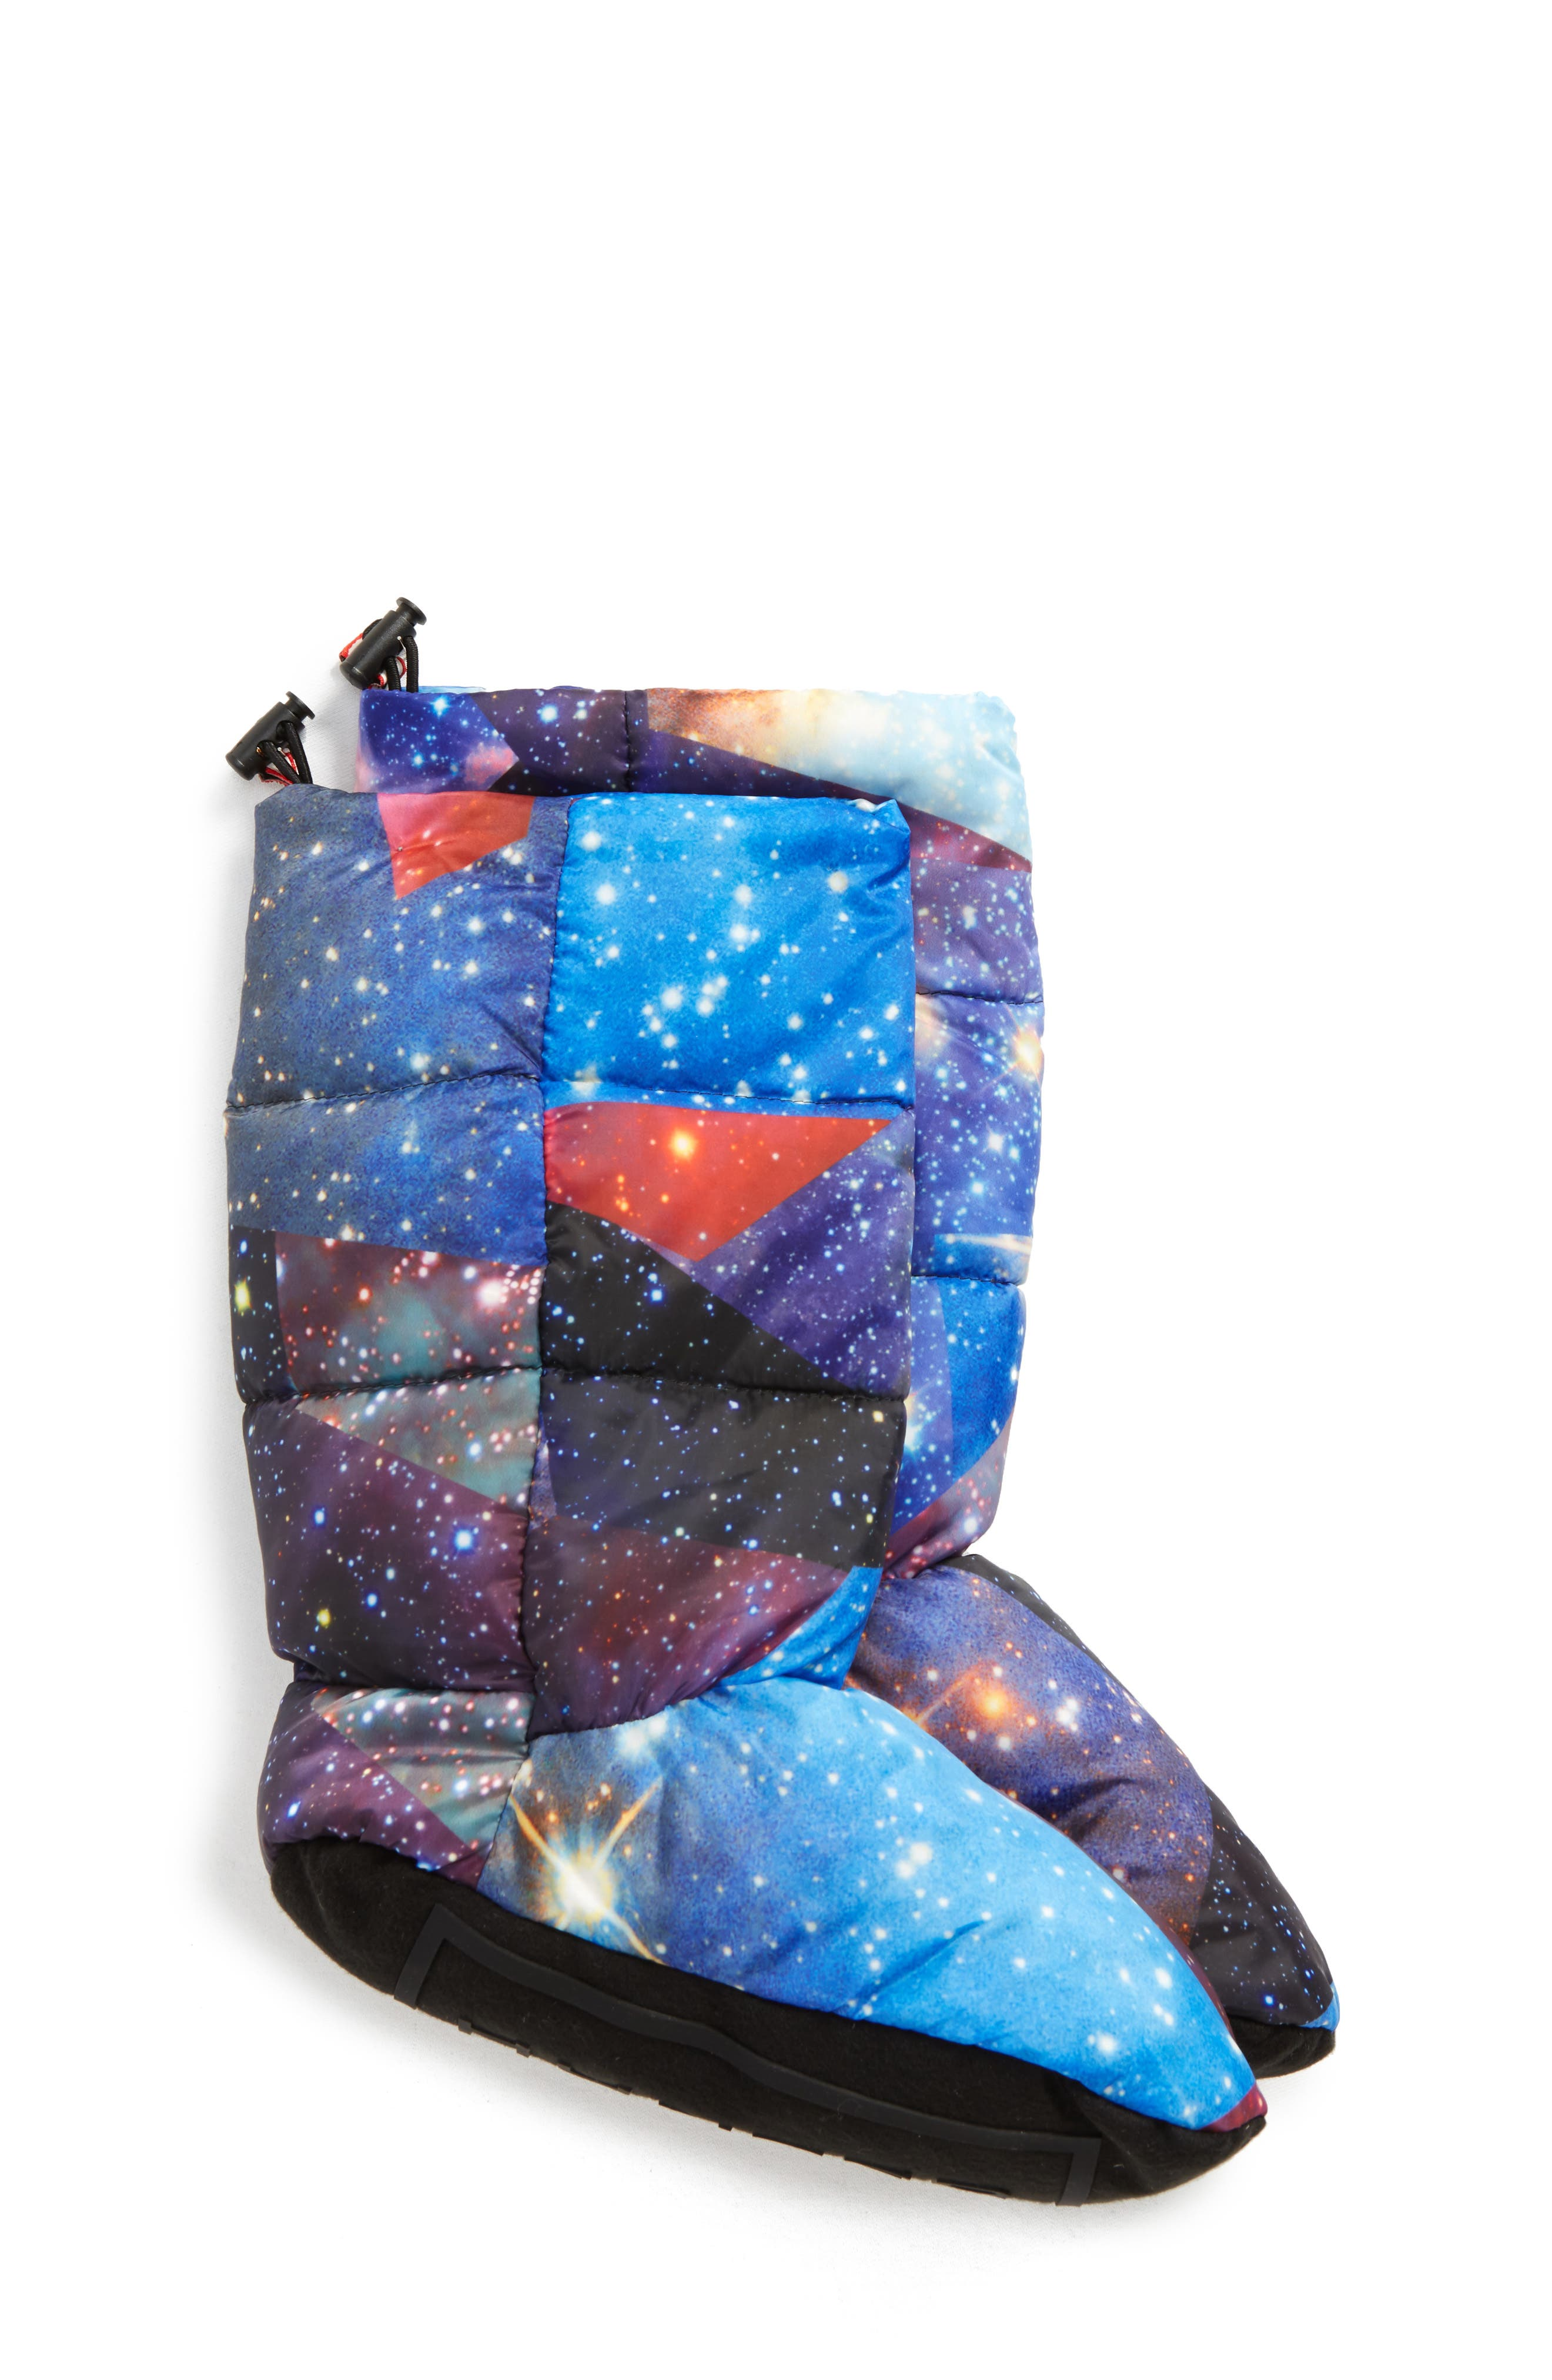 Down Insulated Boot Socks,                             Main thumbnail 1, color,                             400